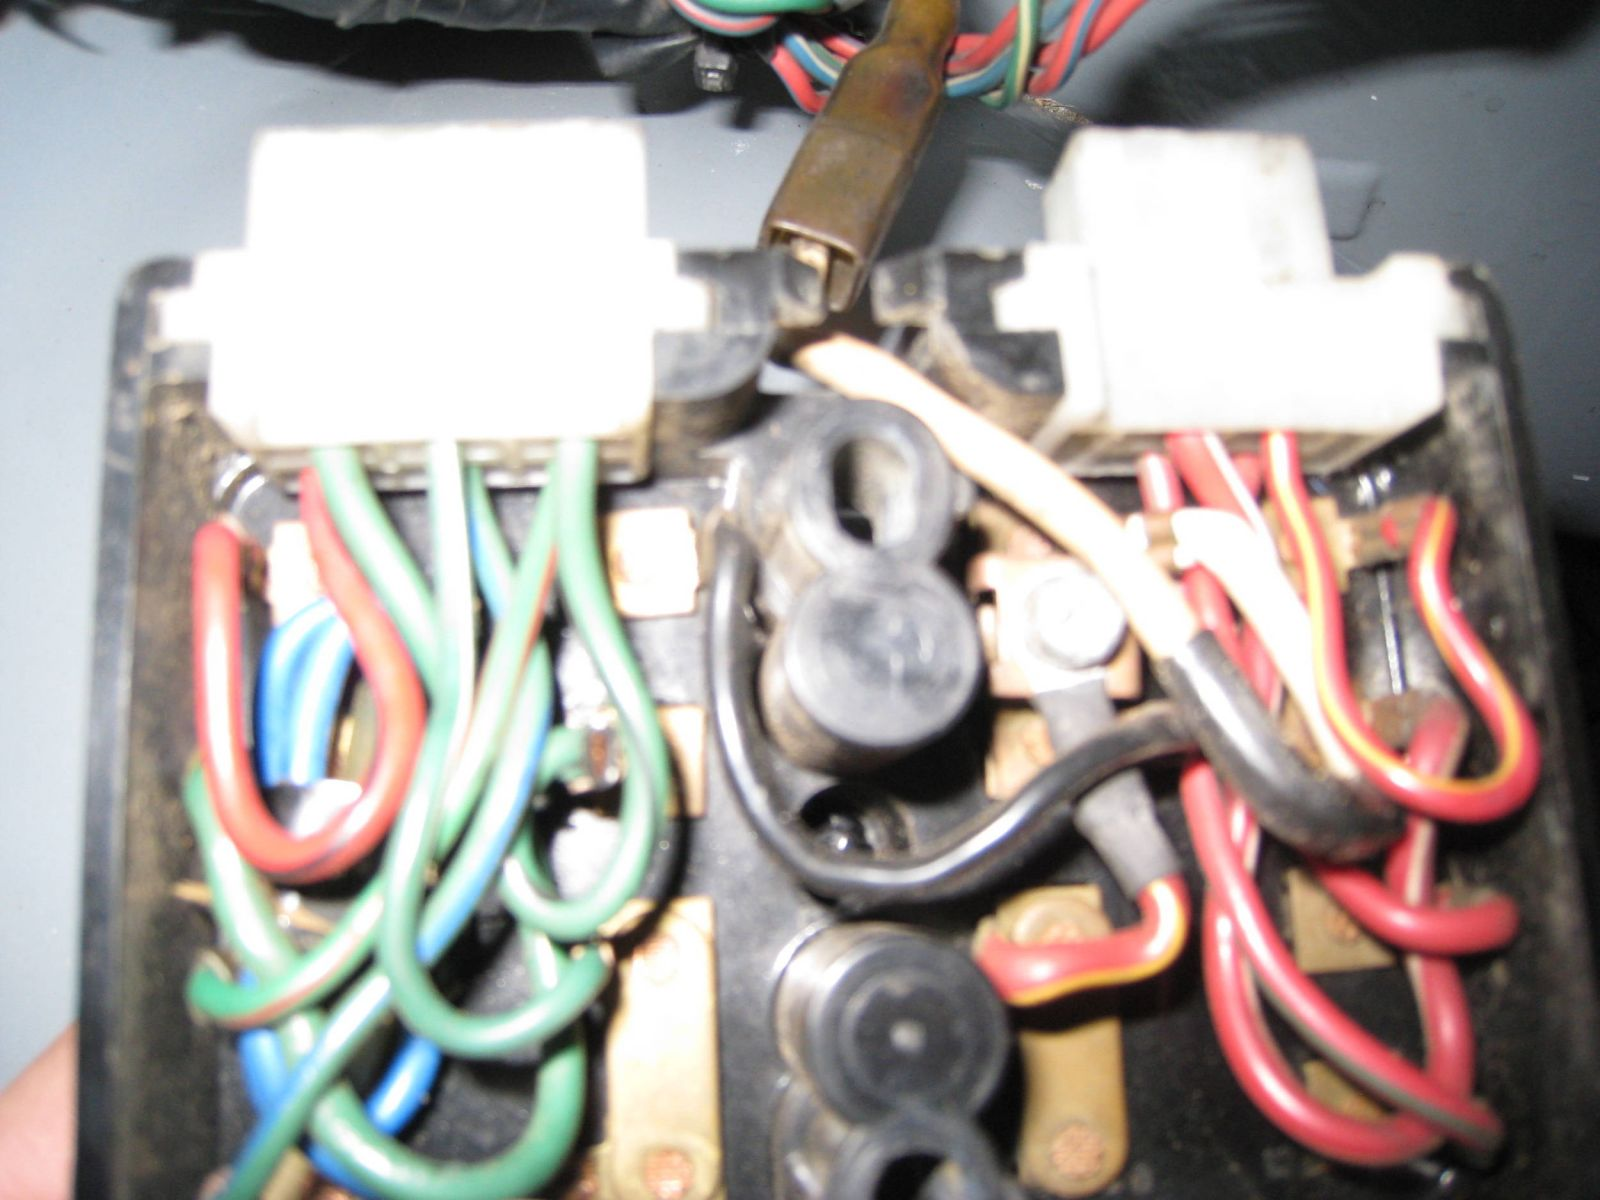 February 1970 Datsun 510 Fusebox Underside Members Albums Fuse Box Sign